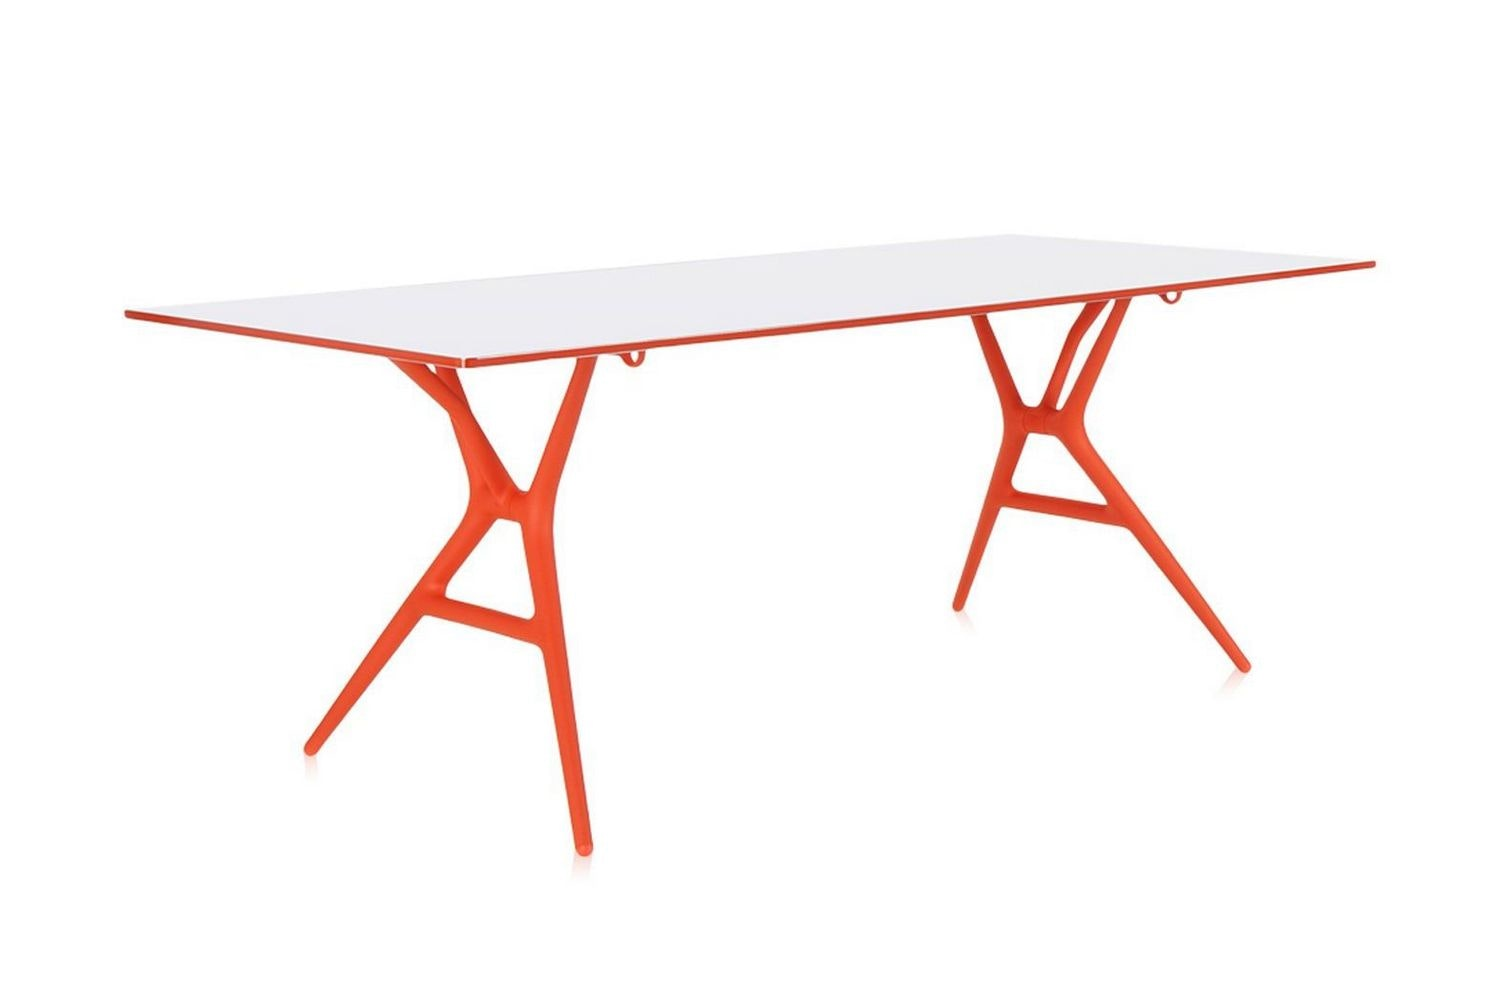 Spoon Table Large by Antonio Citterio with Toan Nguyen for Kartell